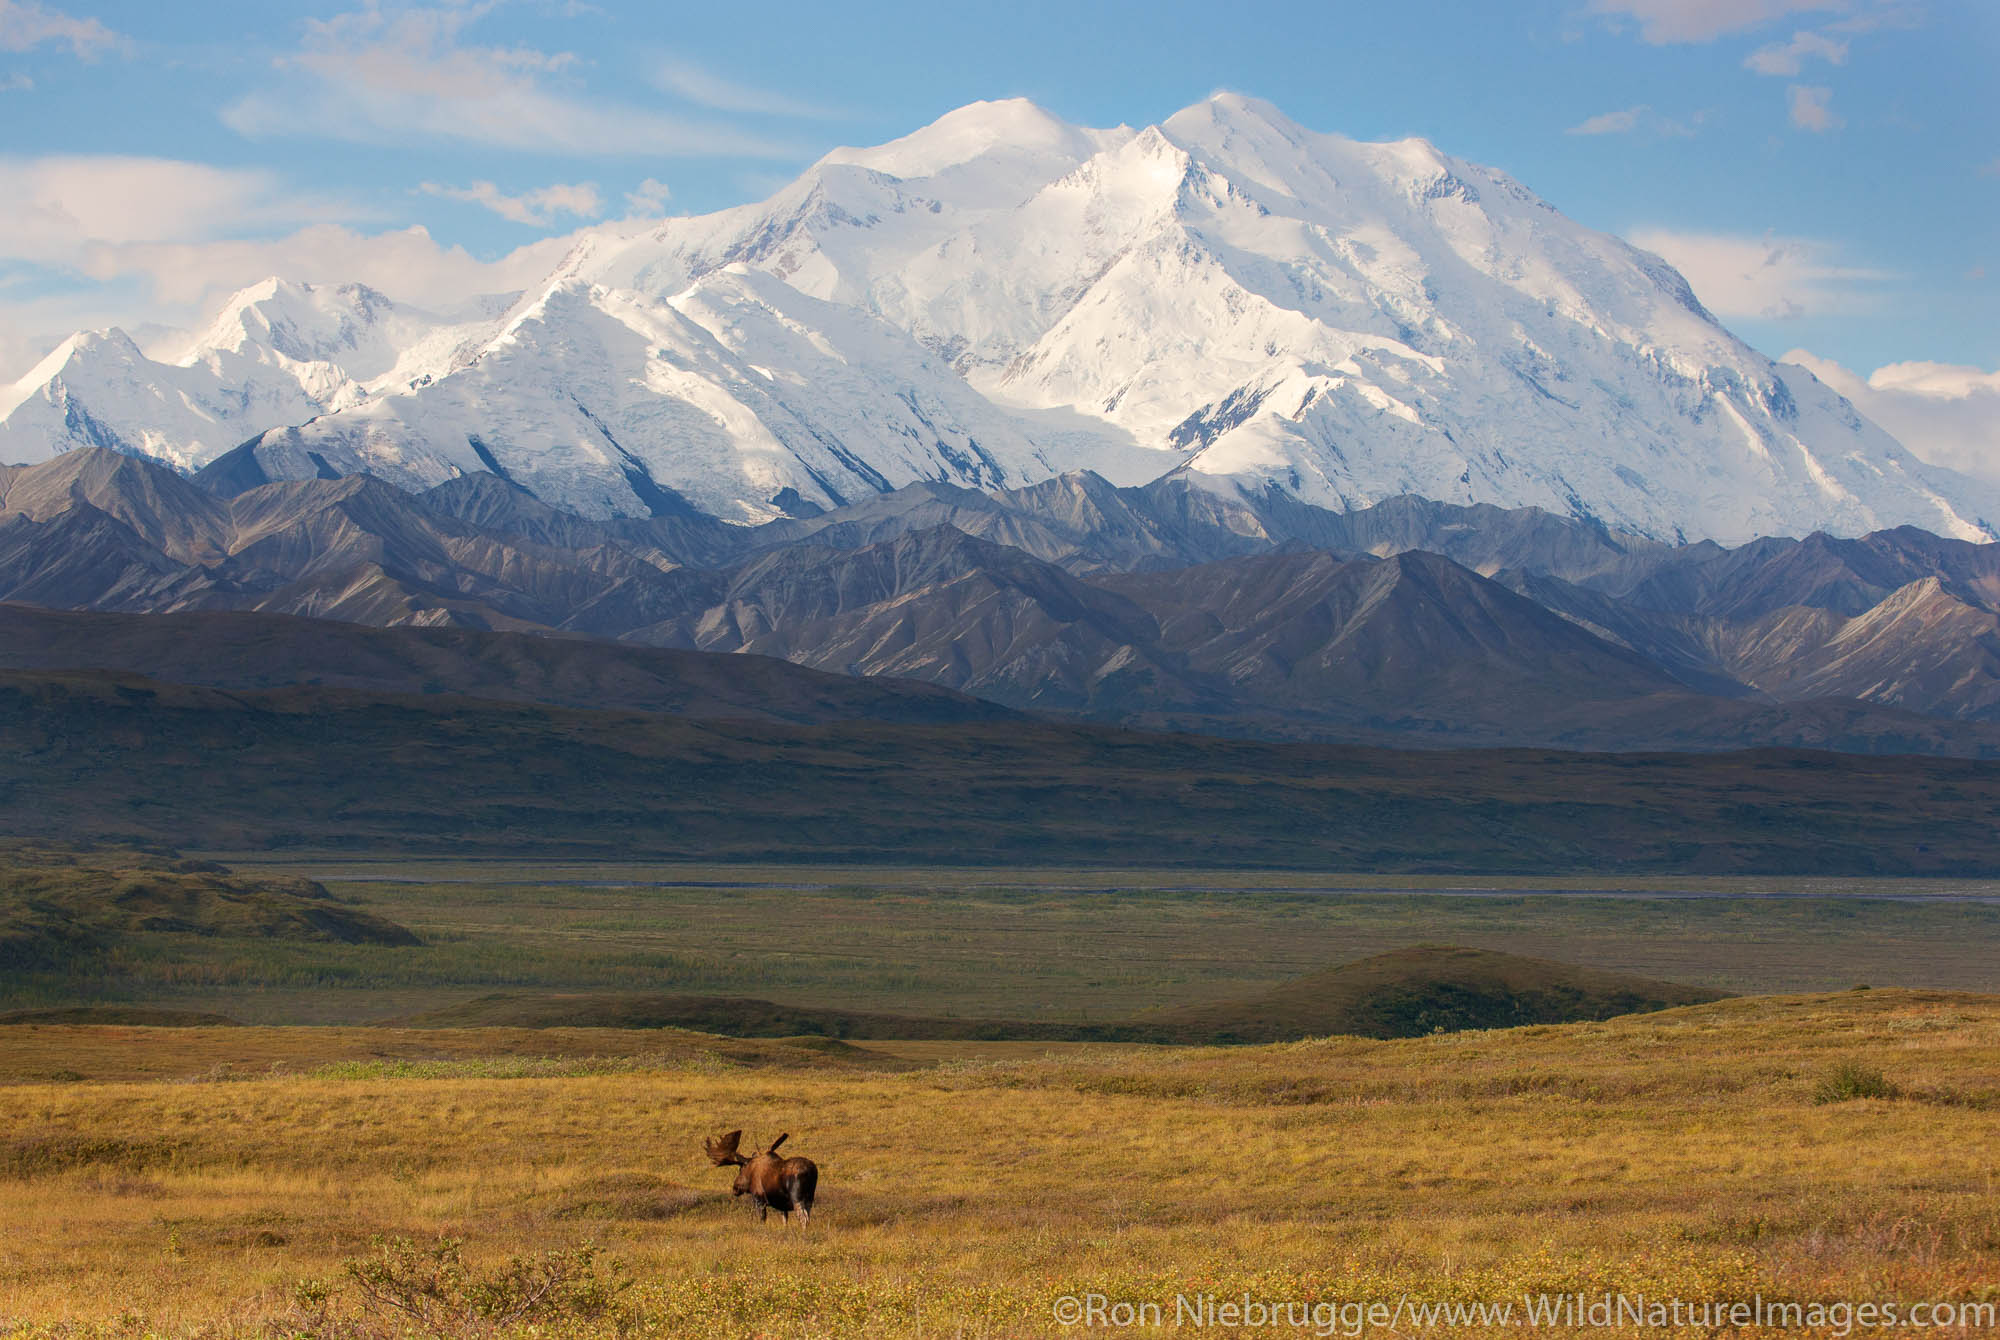 Bull moose in front of Mt. McKinley, Denali National Park, Alaska.